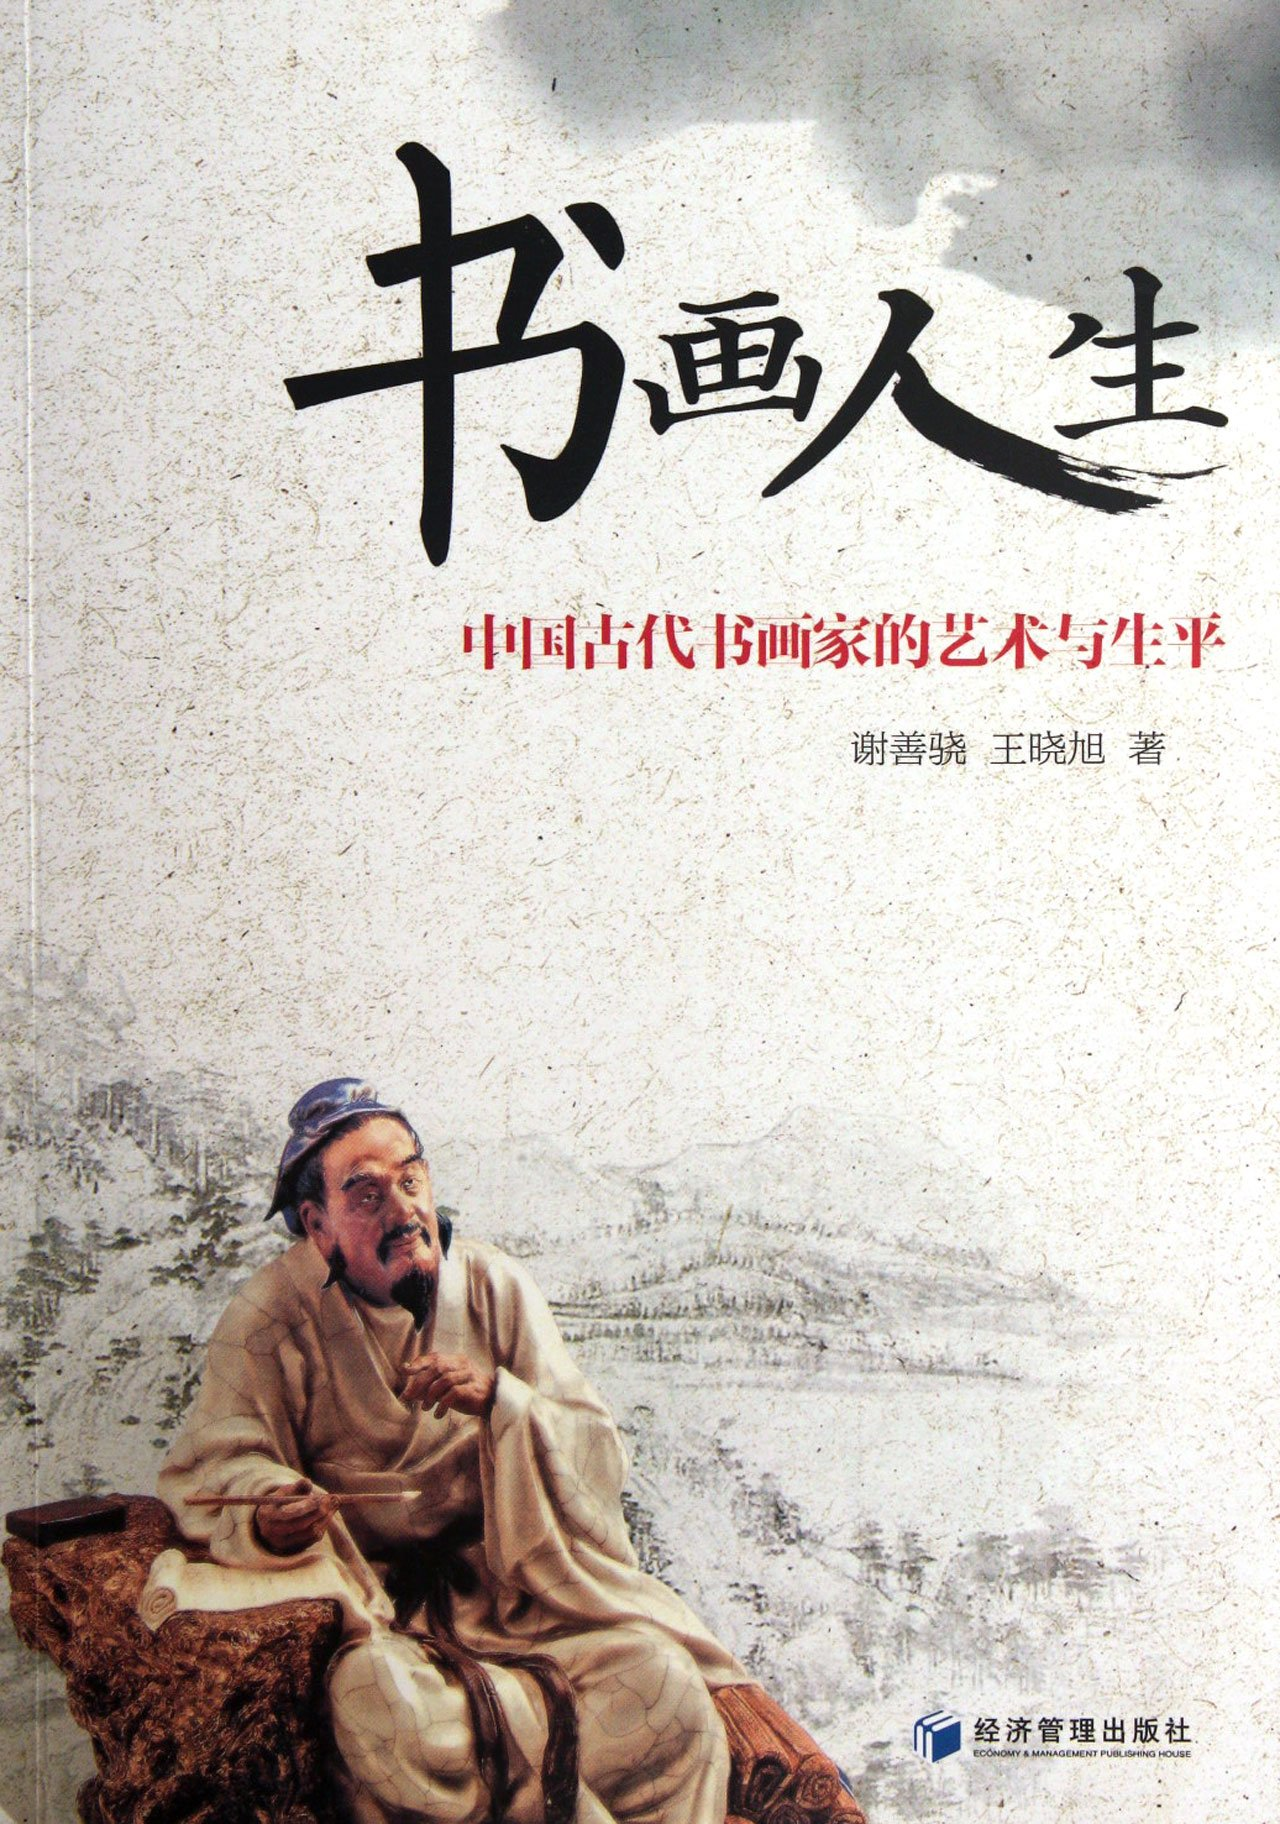 Read Online The Art And Life of Ancient Chinese Painters And Calligraphers (Chinese Edition) pdf